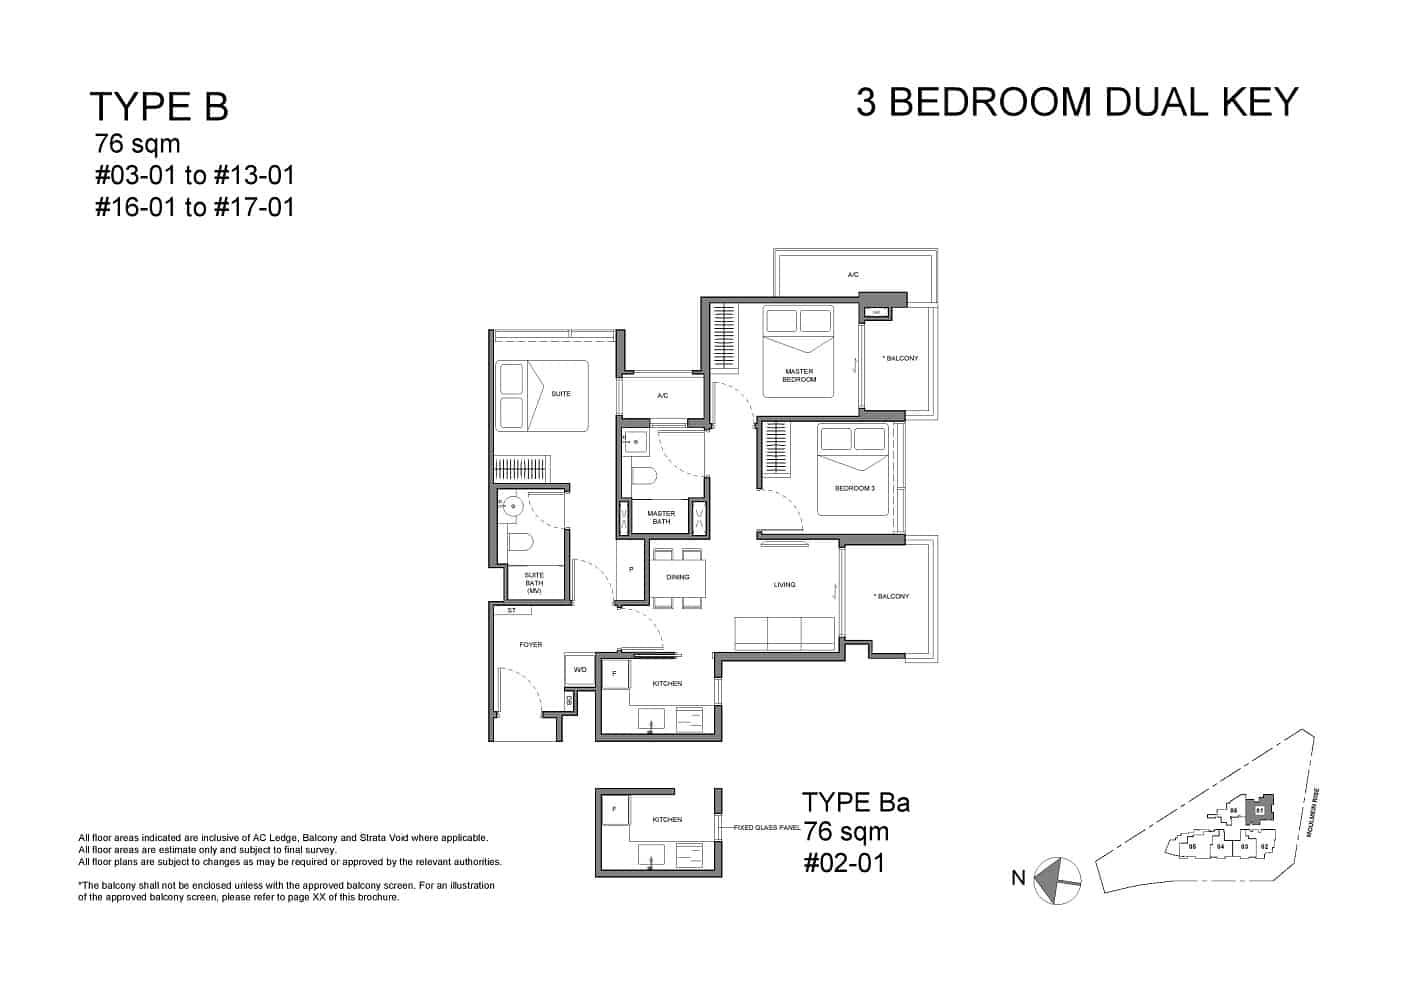 Neu at Novena 3-bedroom dual-key Type B